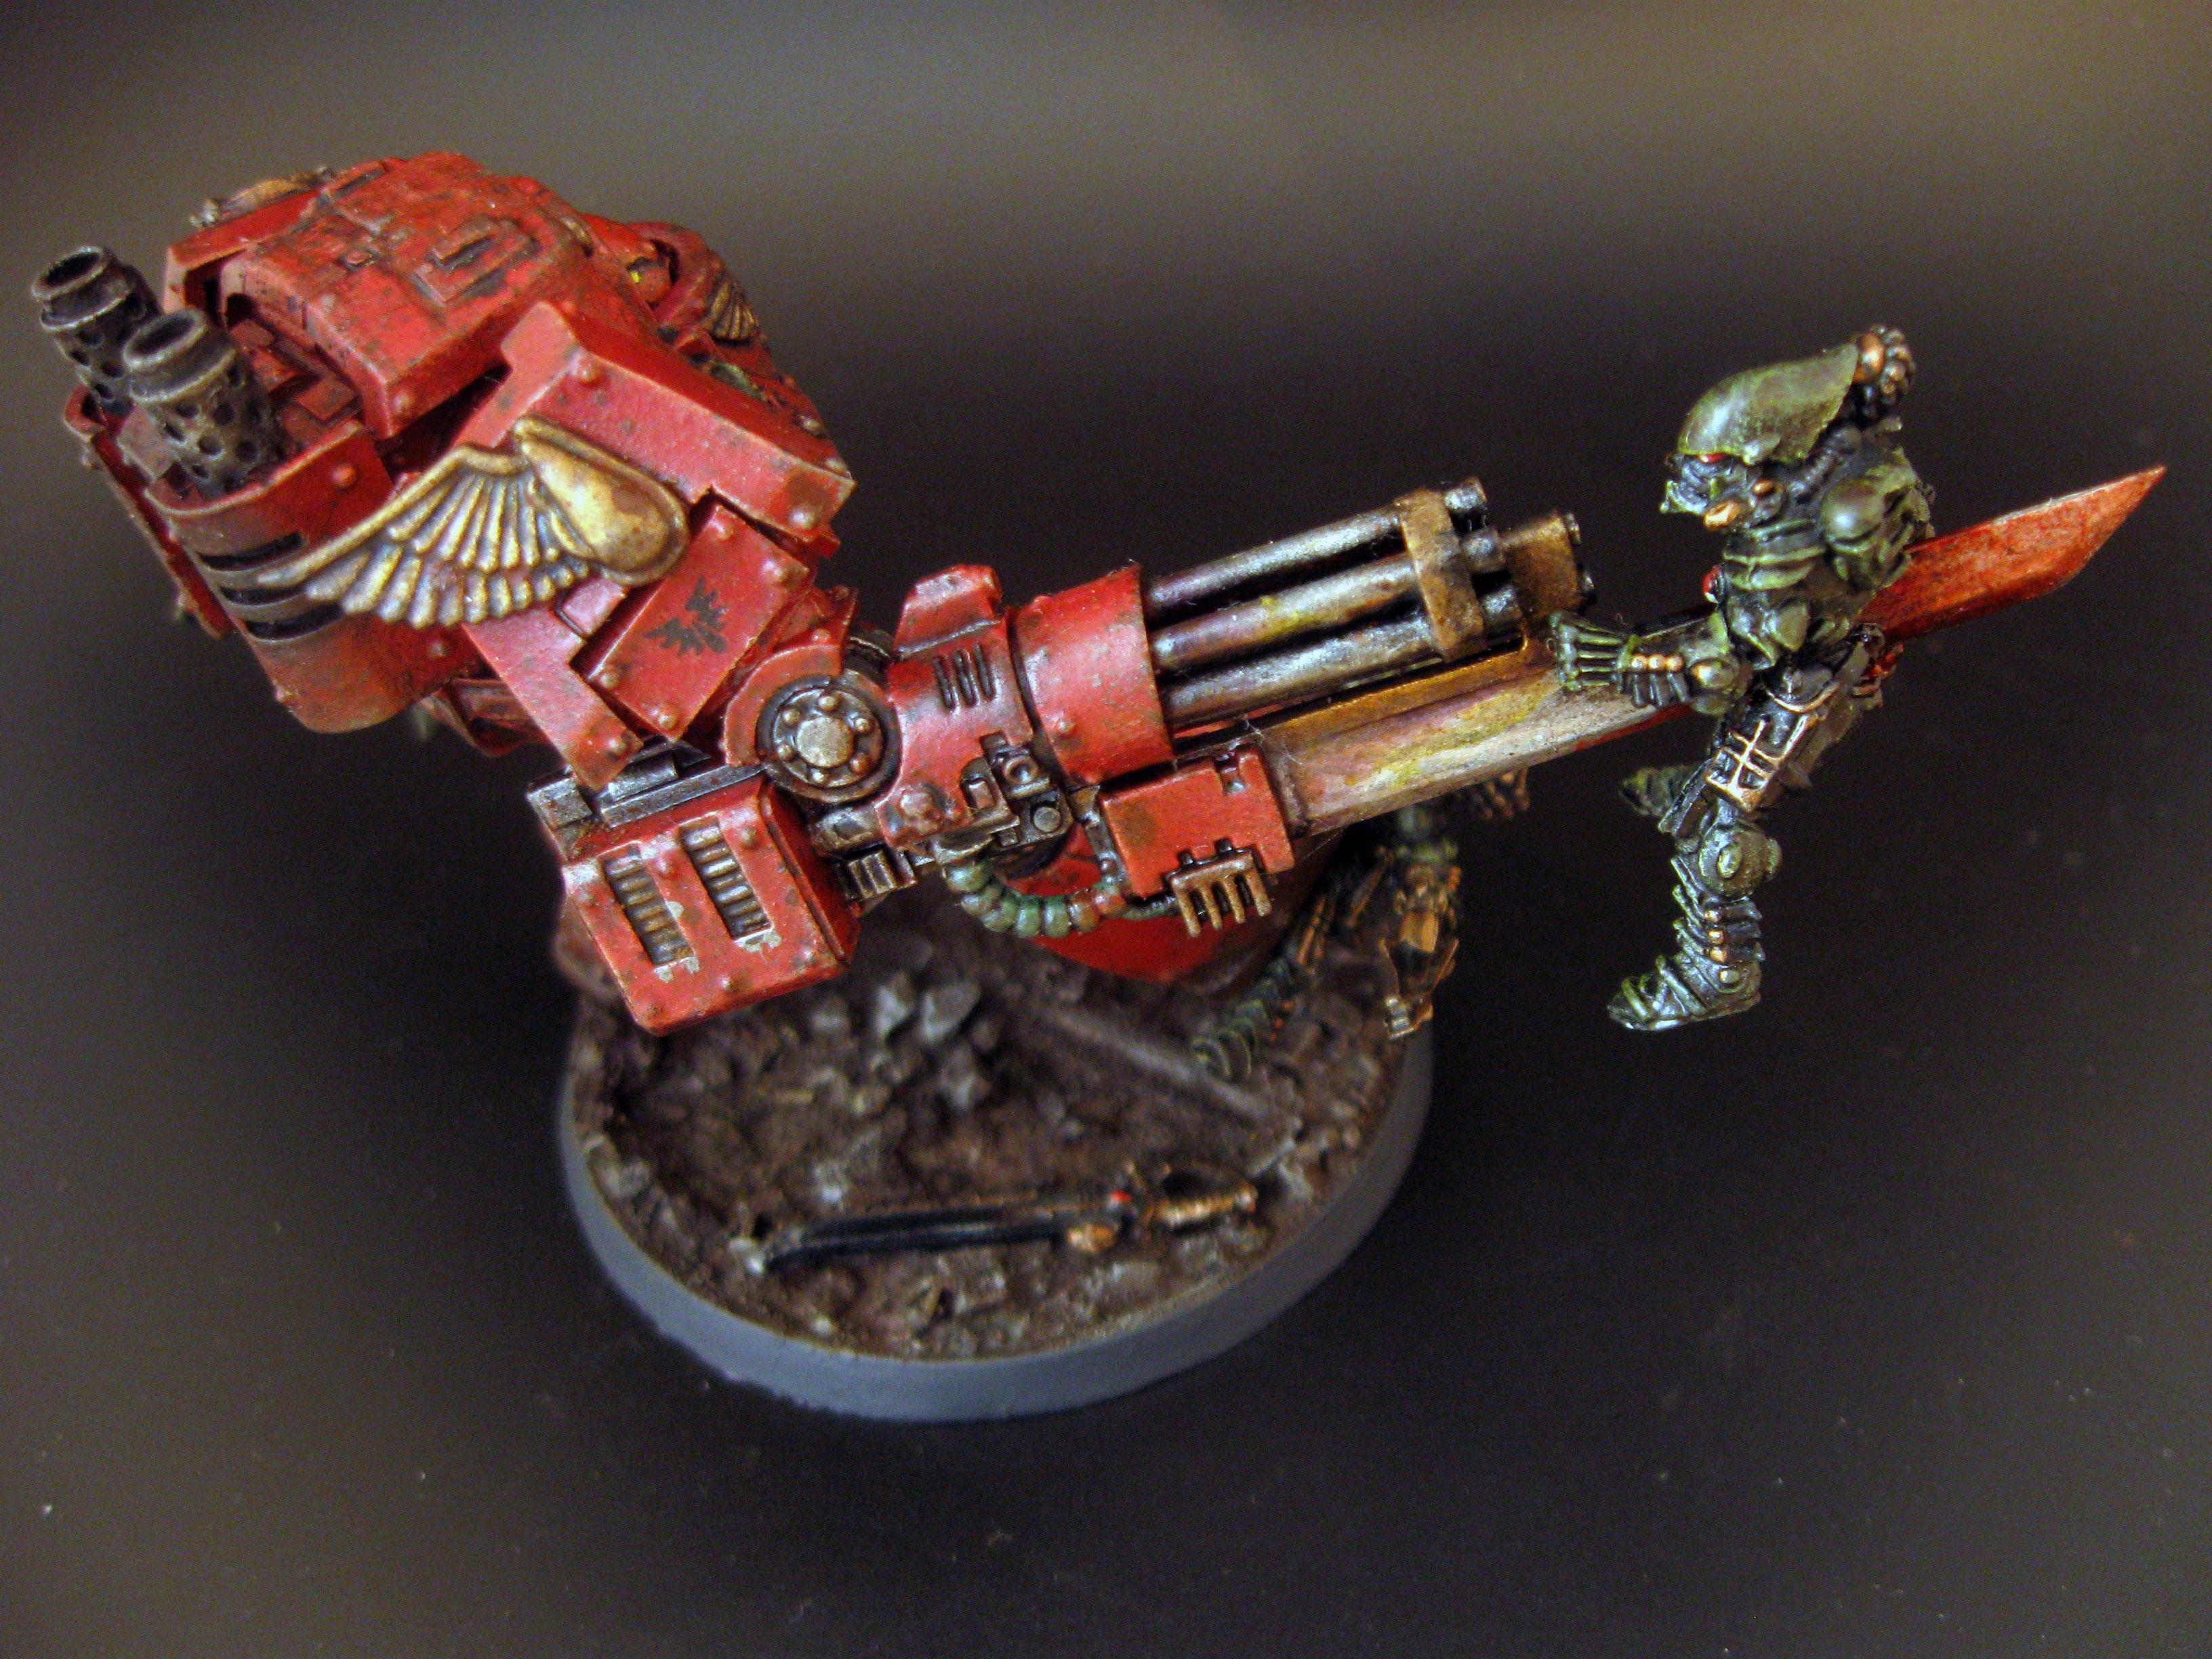 Angel, Blood, Contemptor, Dreadnought, Forge World, Guard, Honour, Meph, Space Marines